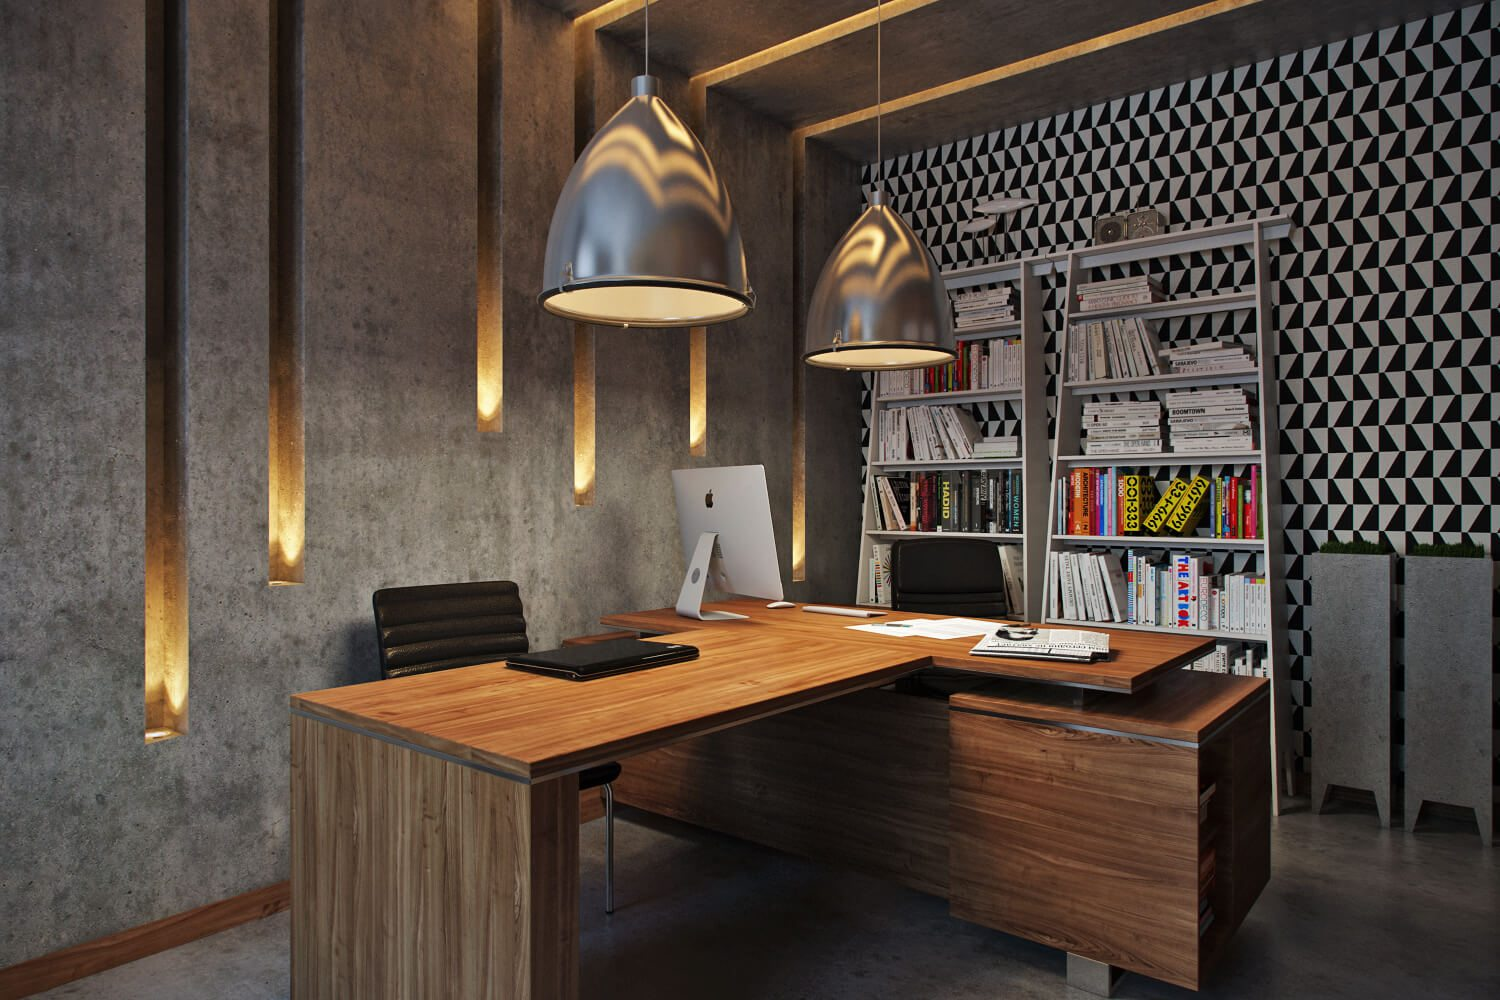 Professional Photoreal Rendering: CEO Office Modern Design View04